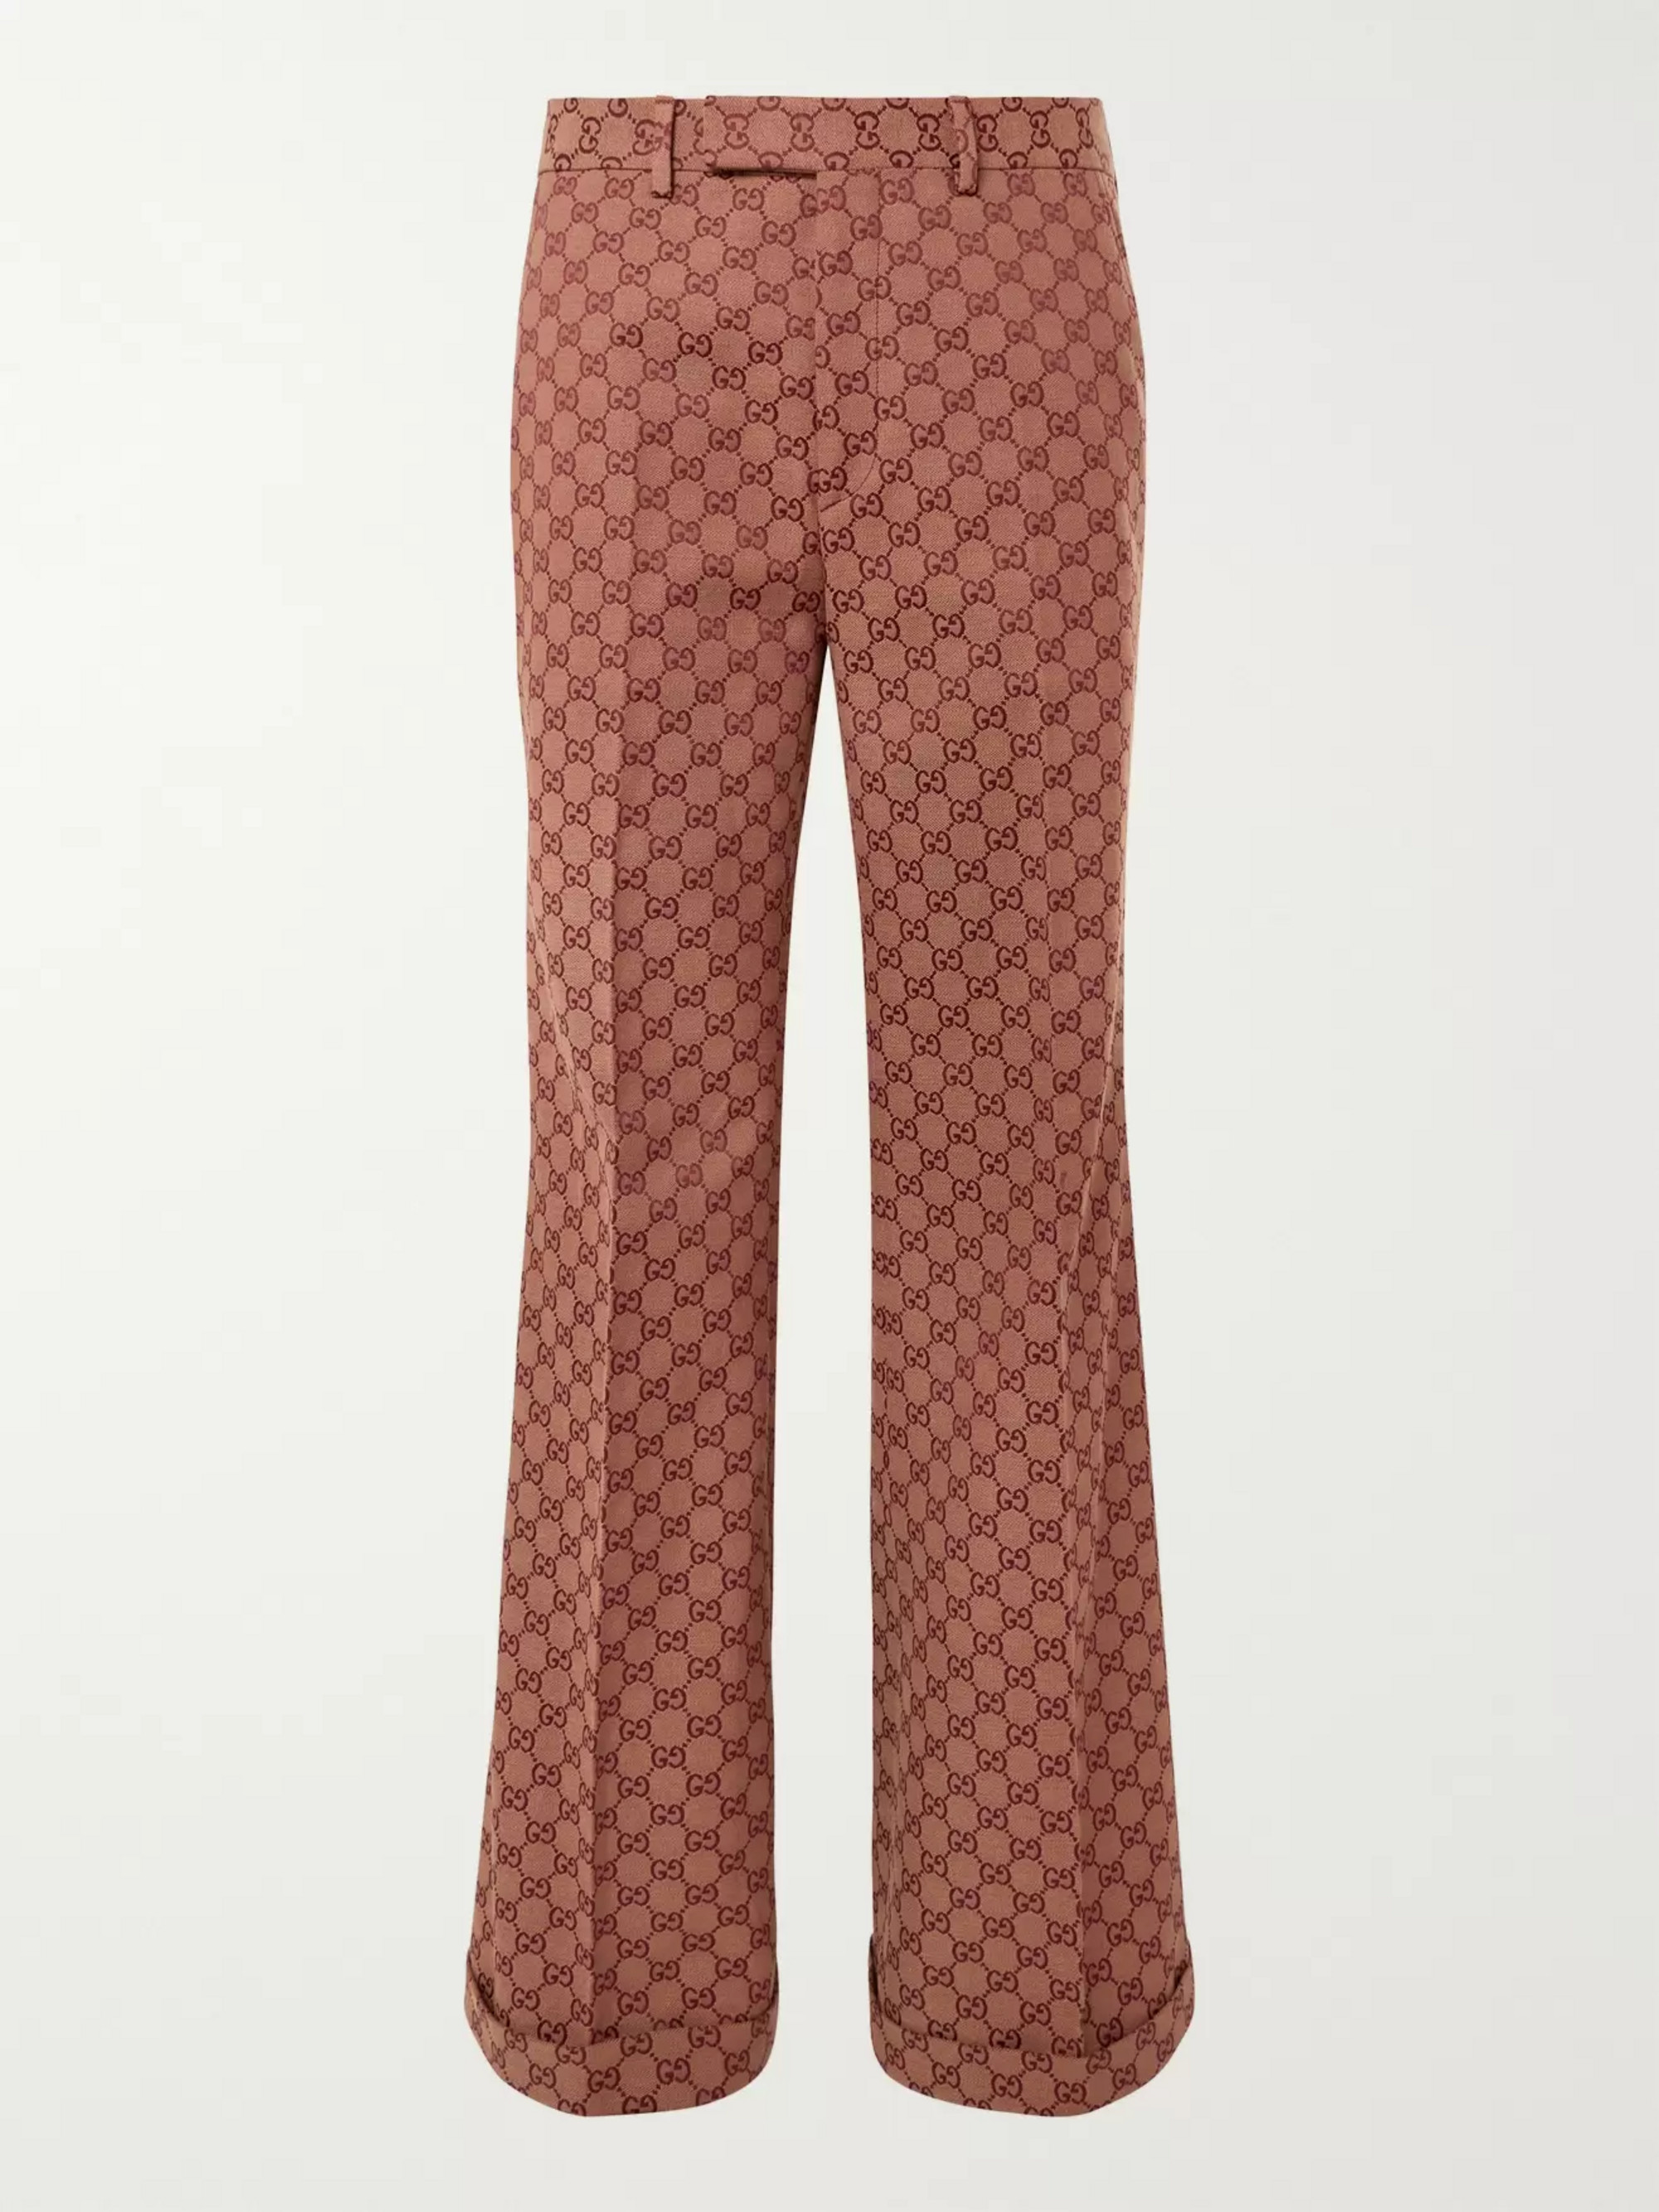 Gucci Wide-Leg Logo-Jacquard Cotton-Blend Trousers